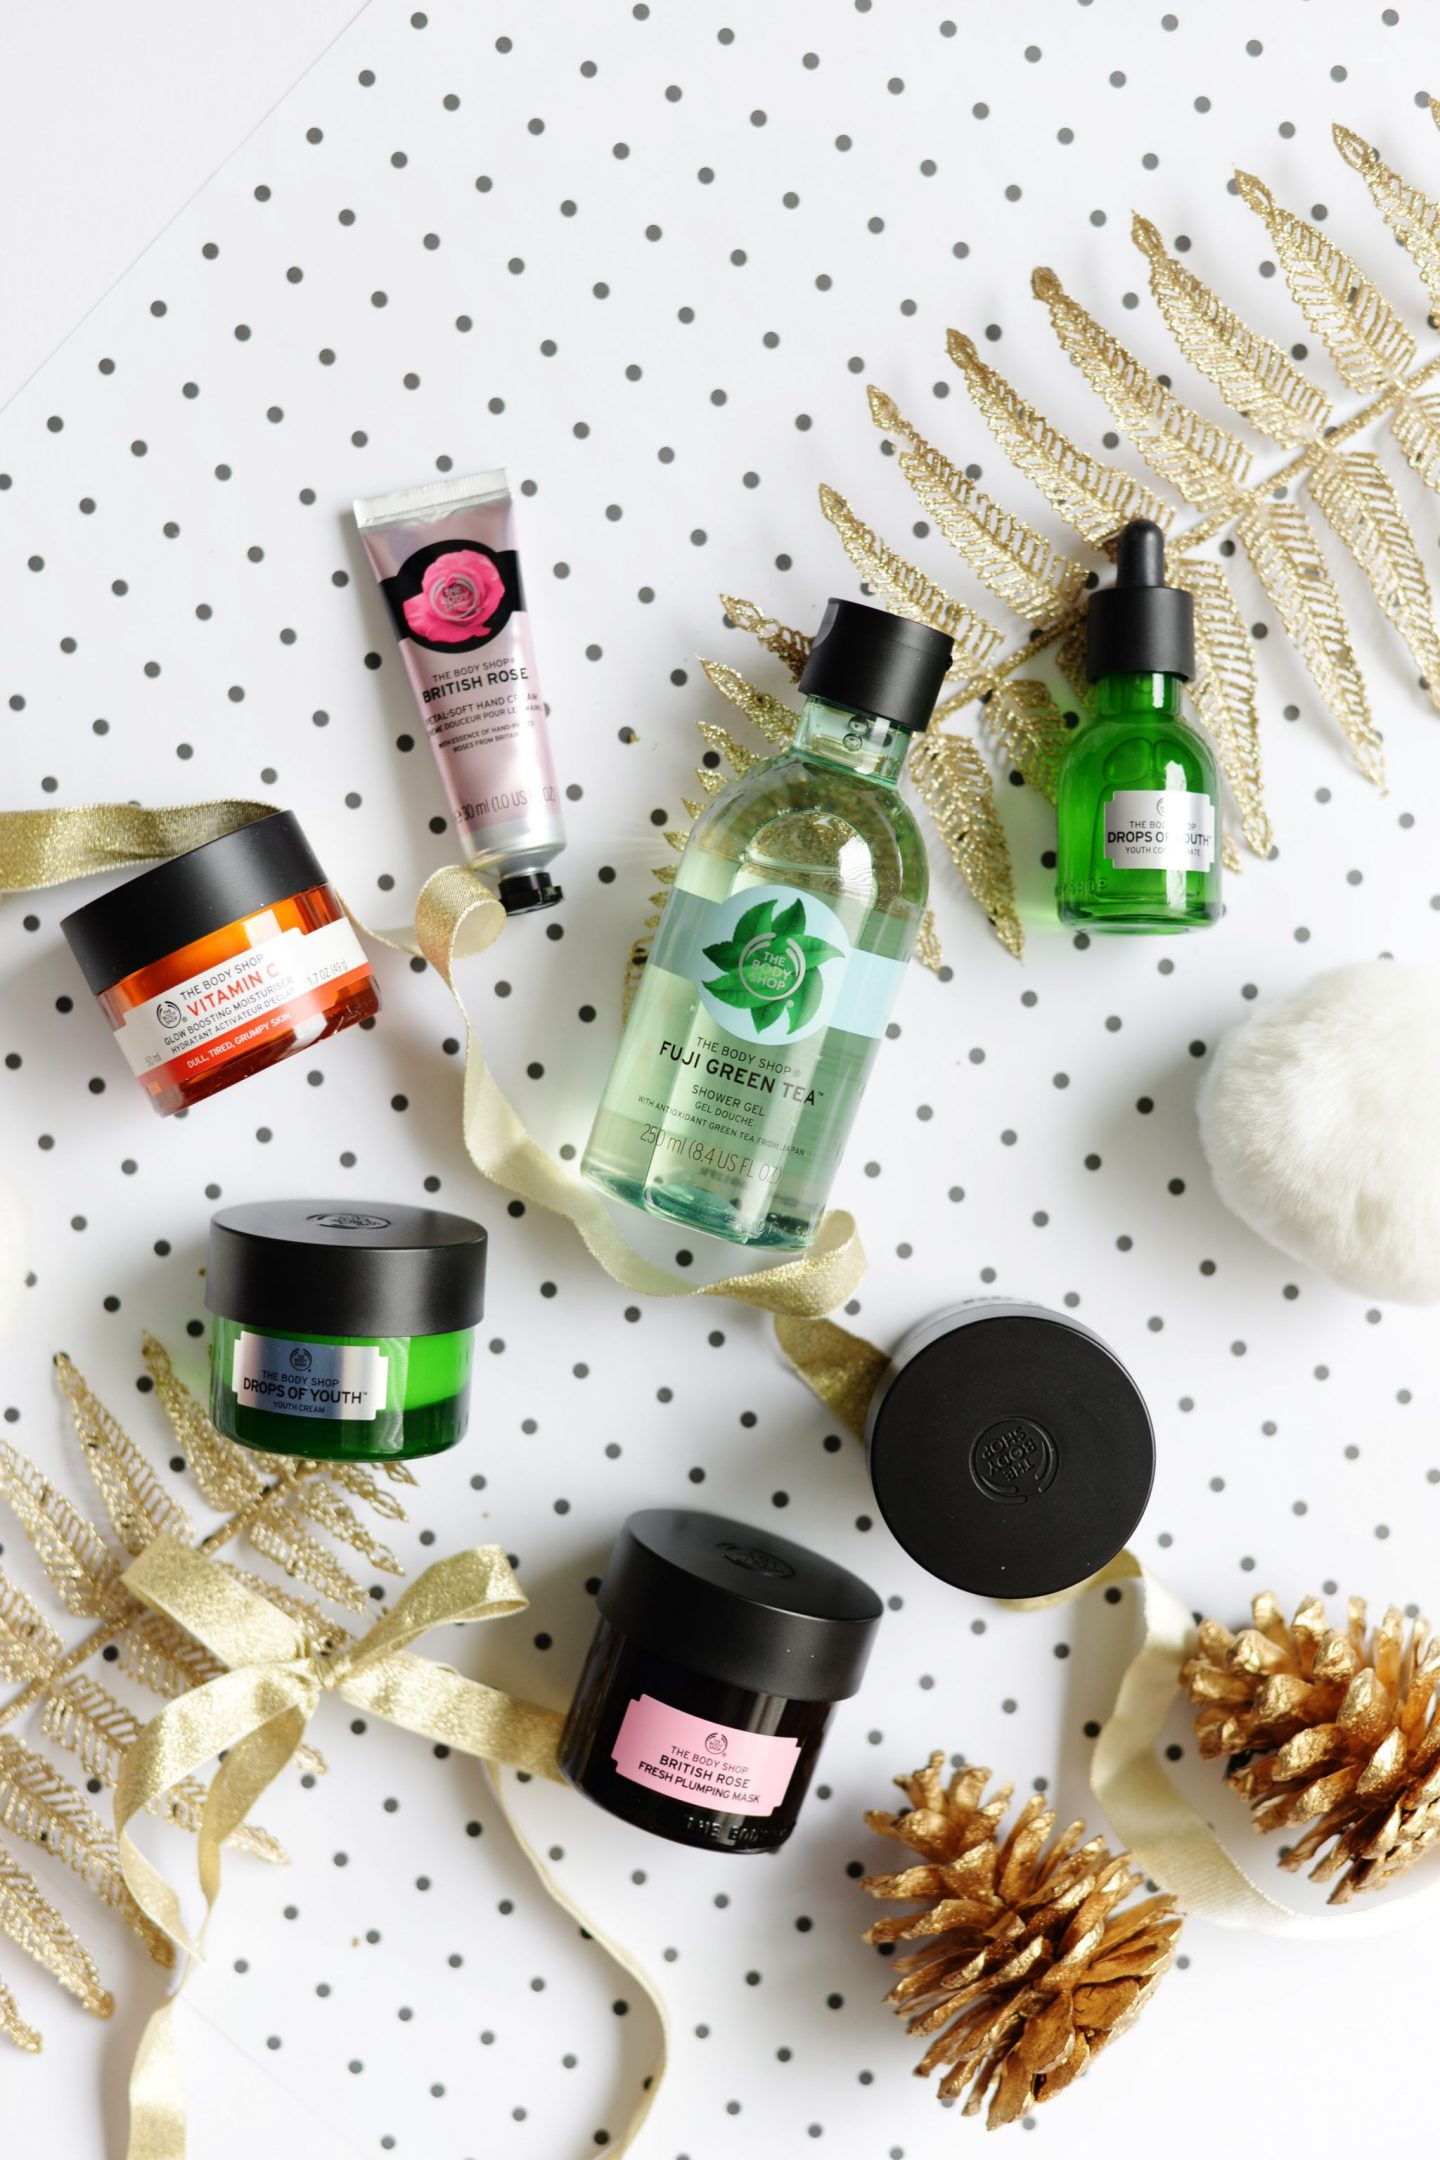 Last Minute Christmas Gifts with The Body Shop*